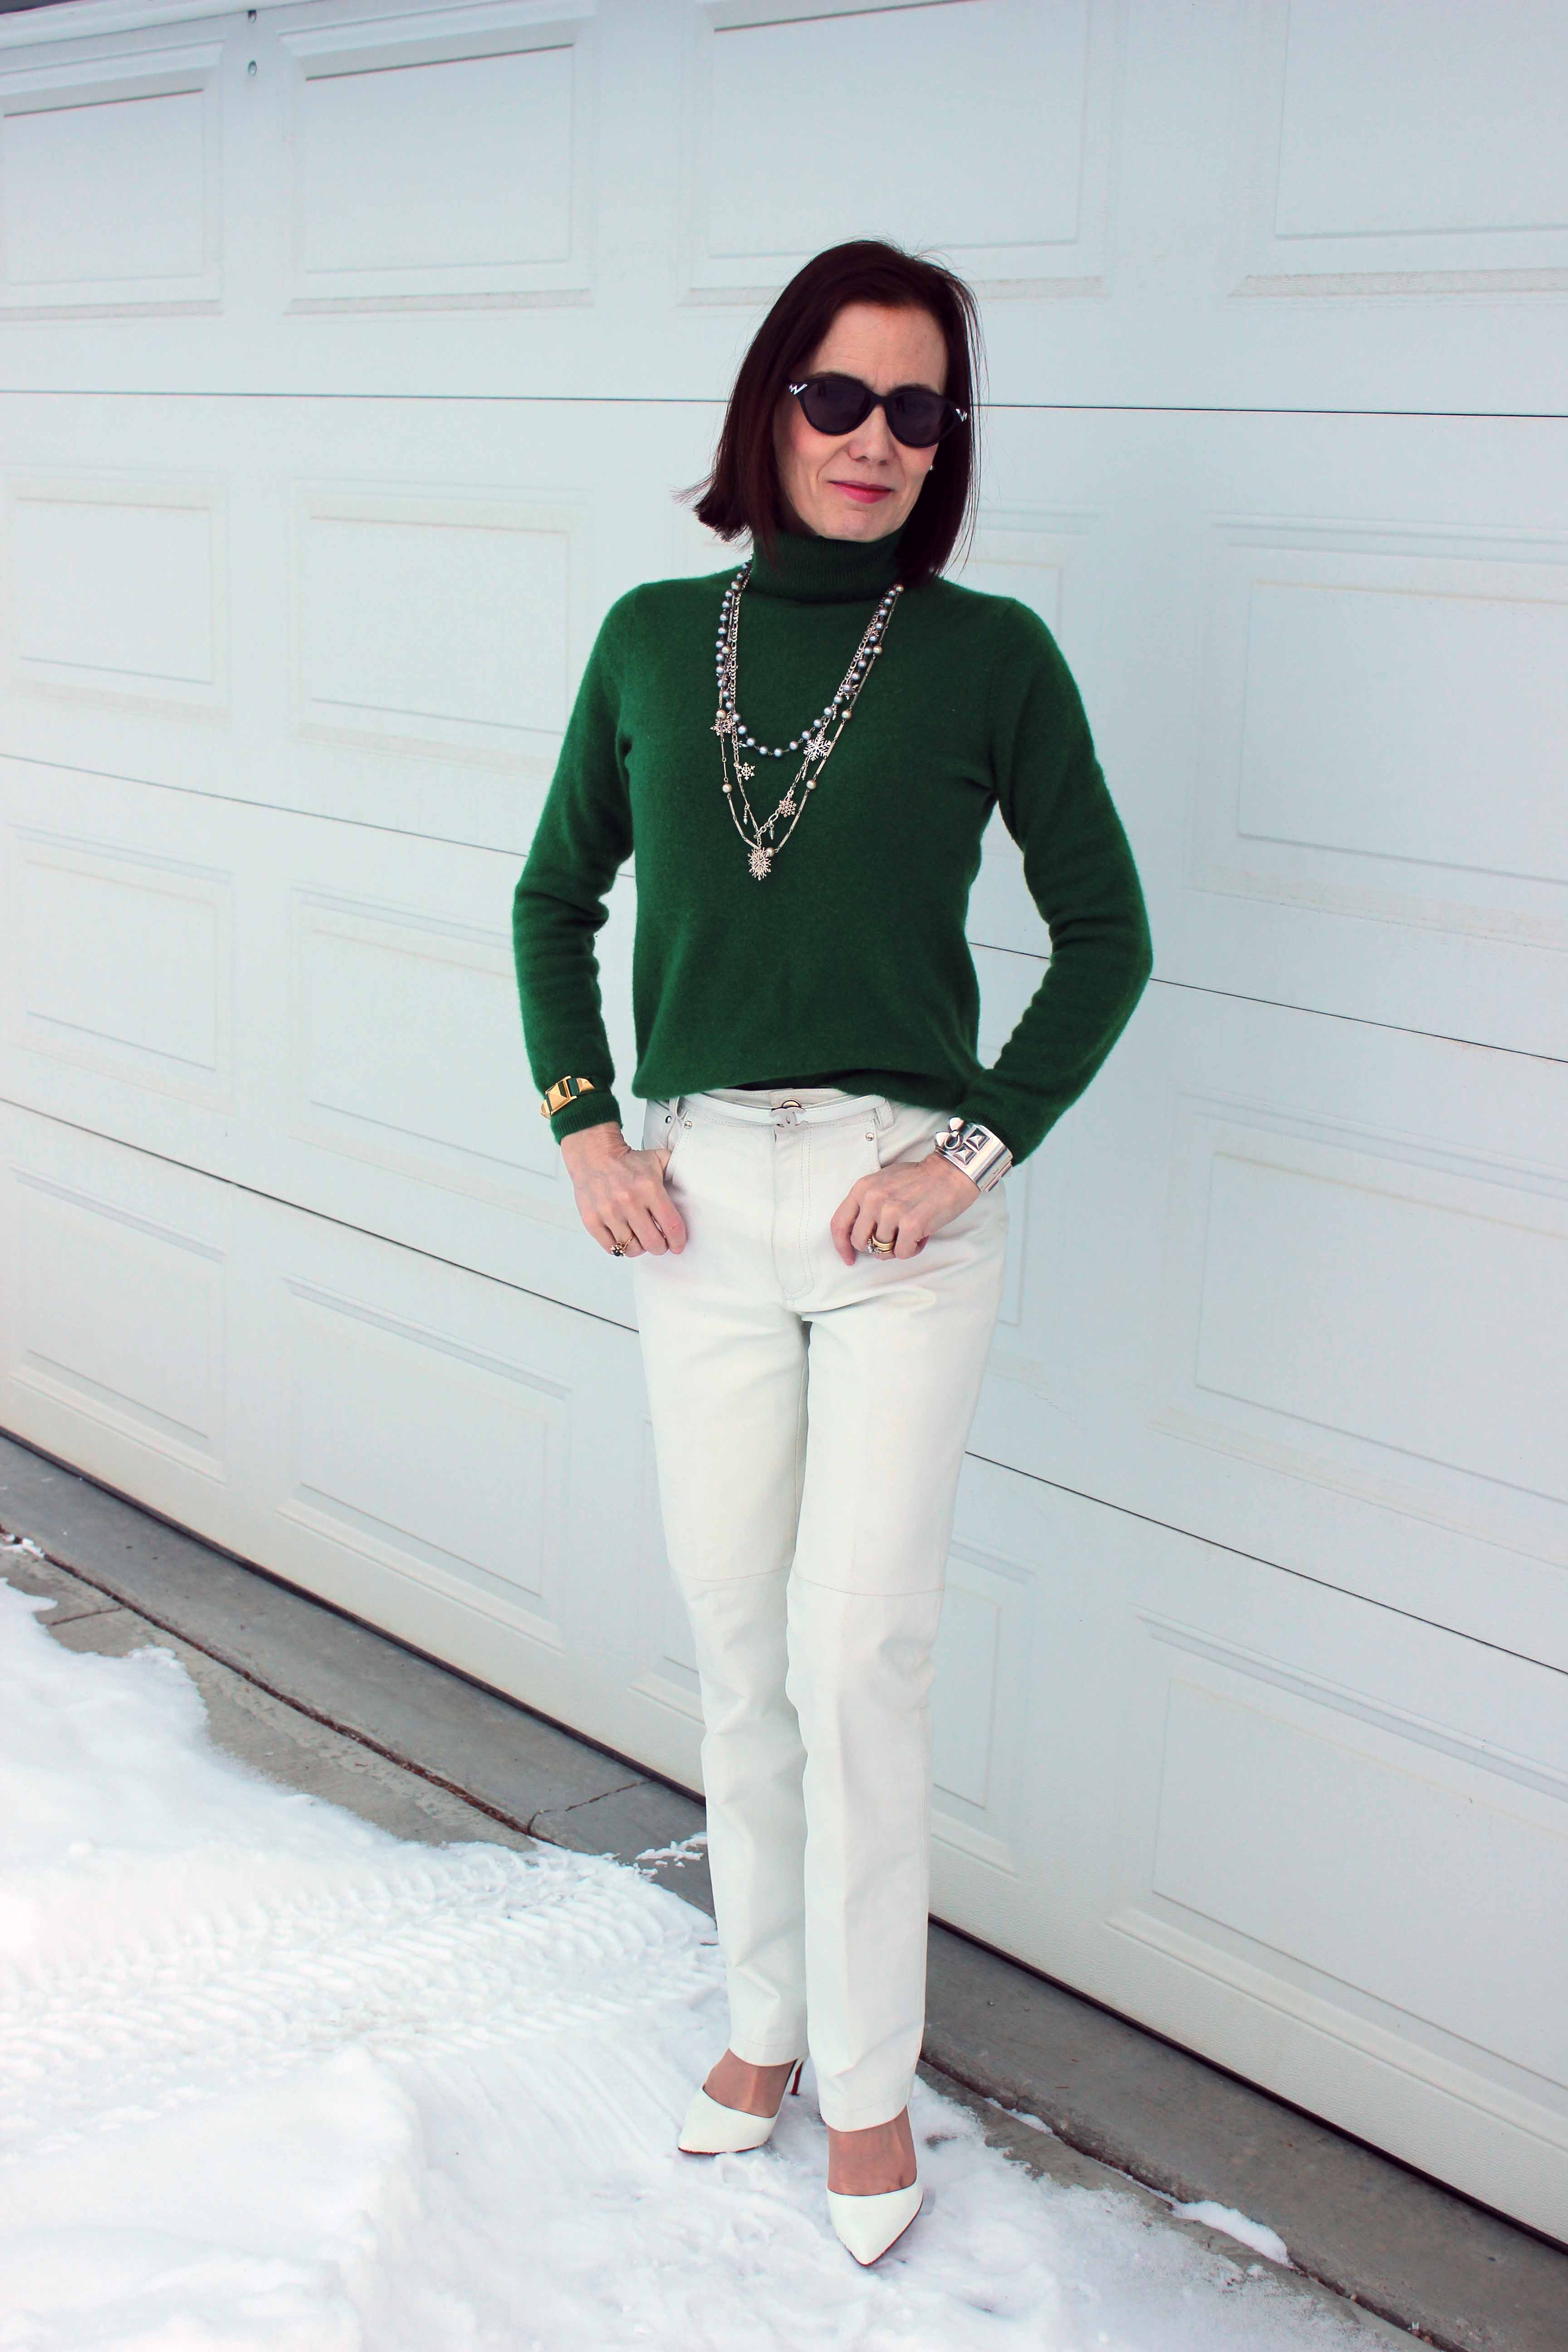 #fashionover40 woman in green and white outfit for a holiday family breakfast